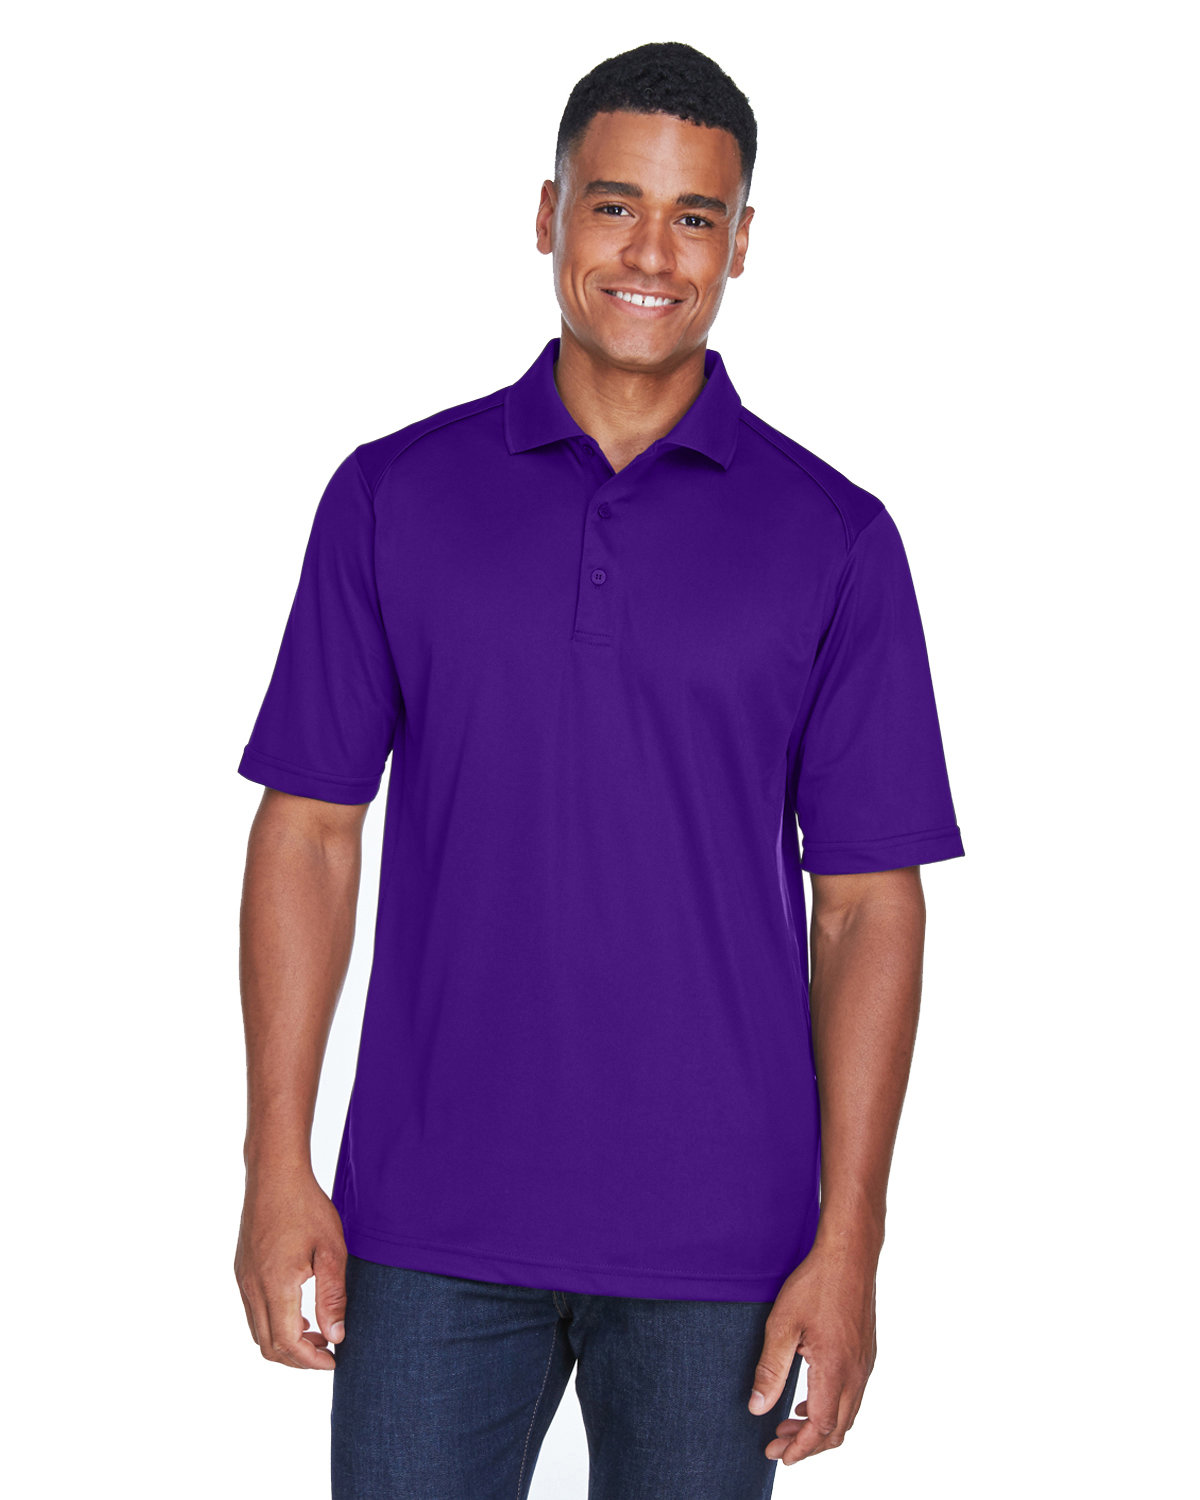 Extreme Men's Eperformance™ Shield Snag Protection Short-Sleeve Polo CAMPUS PURPLE